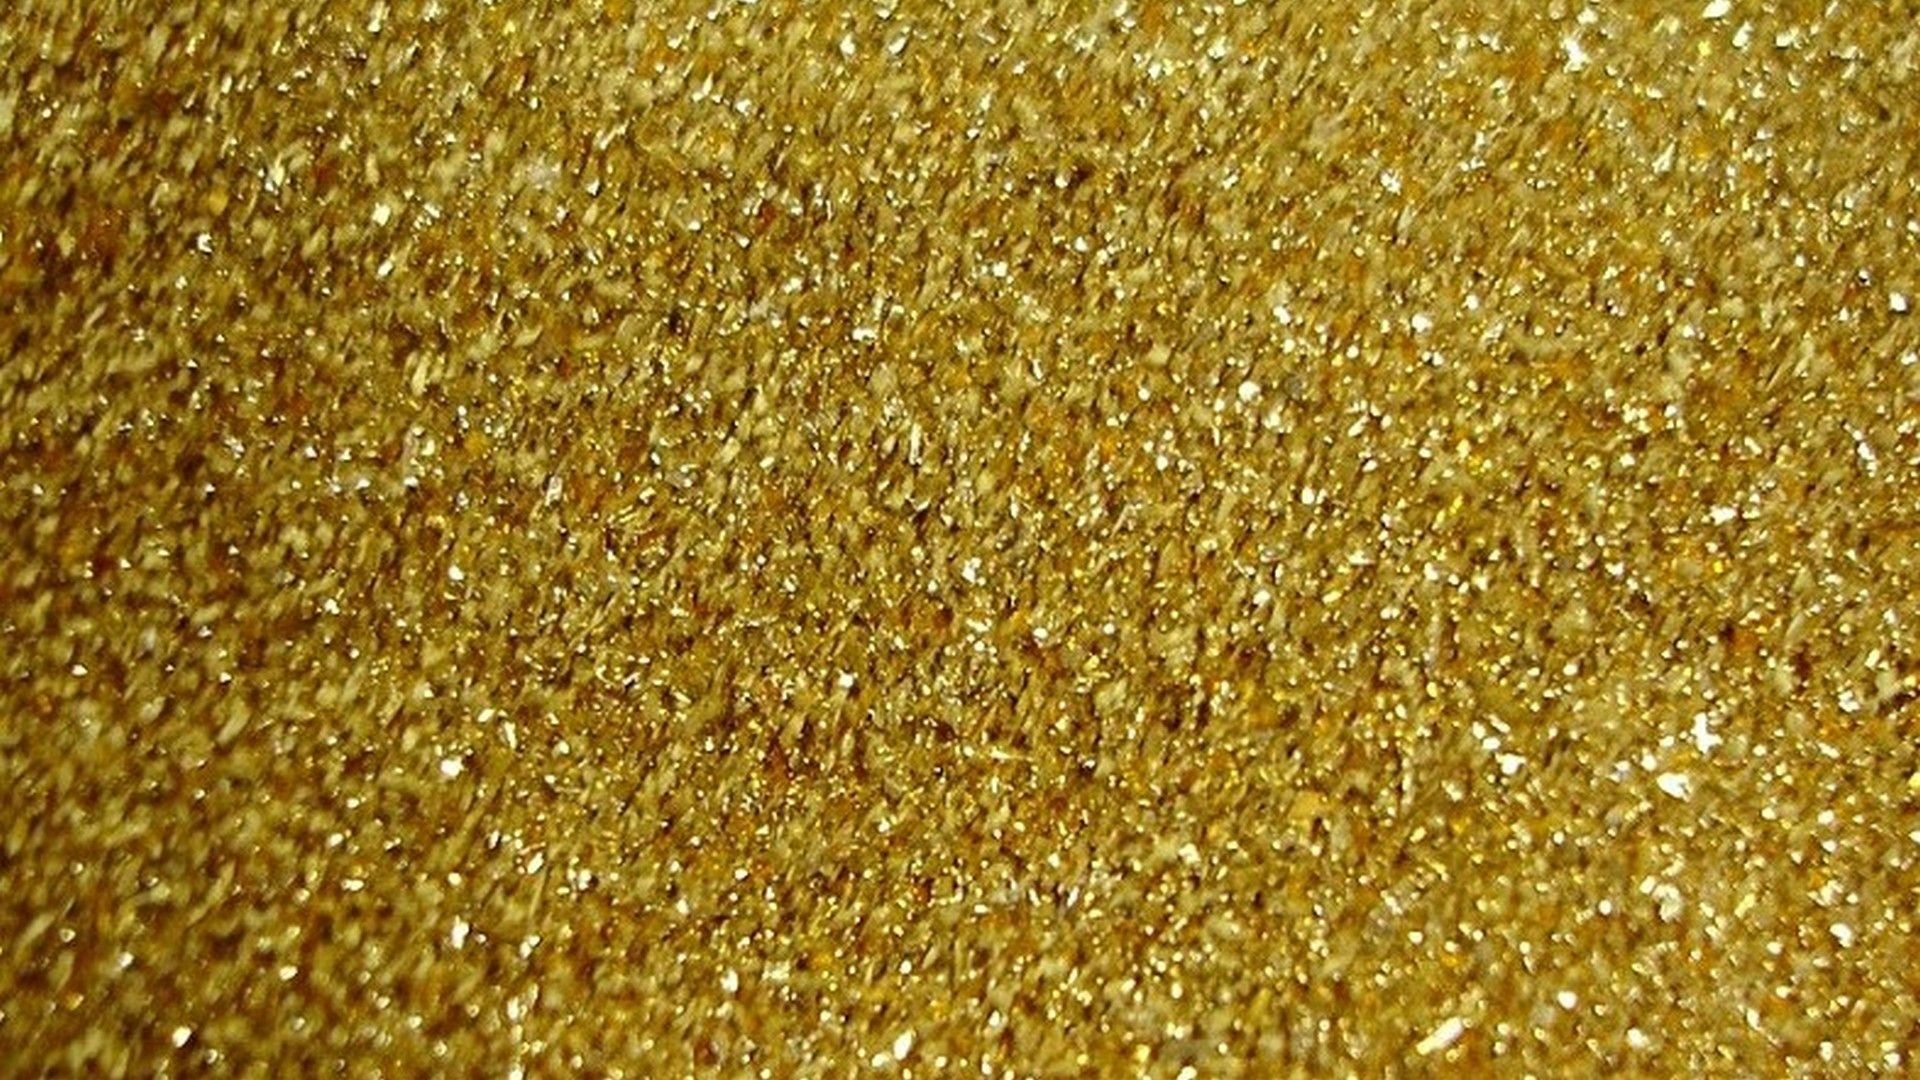 Gold glitter wallpaper iphone - Rose gold glitter iphone wallpaper ...